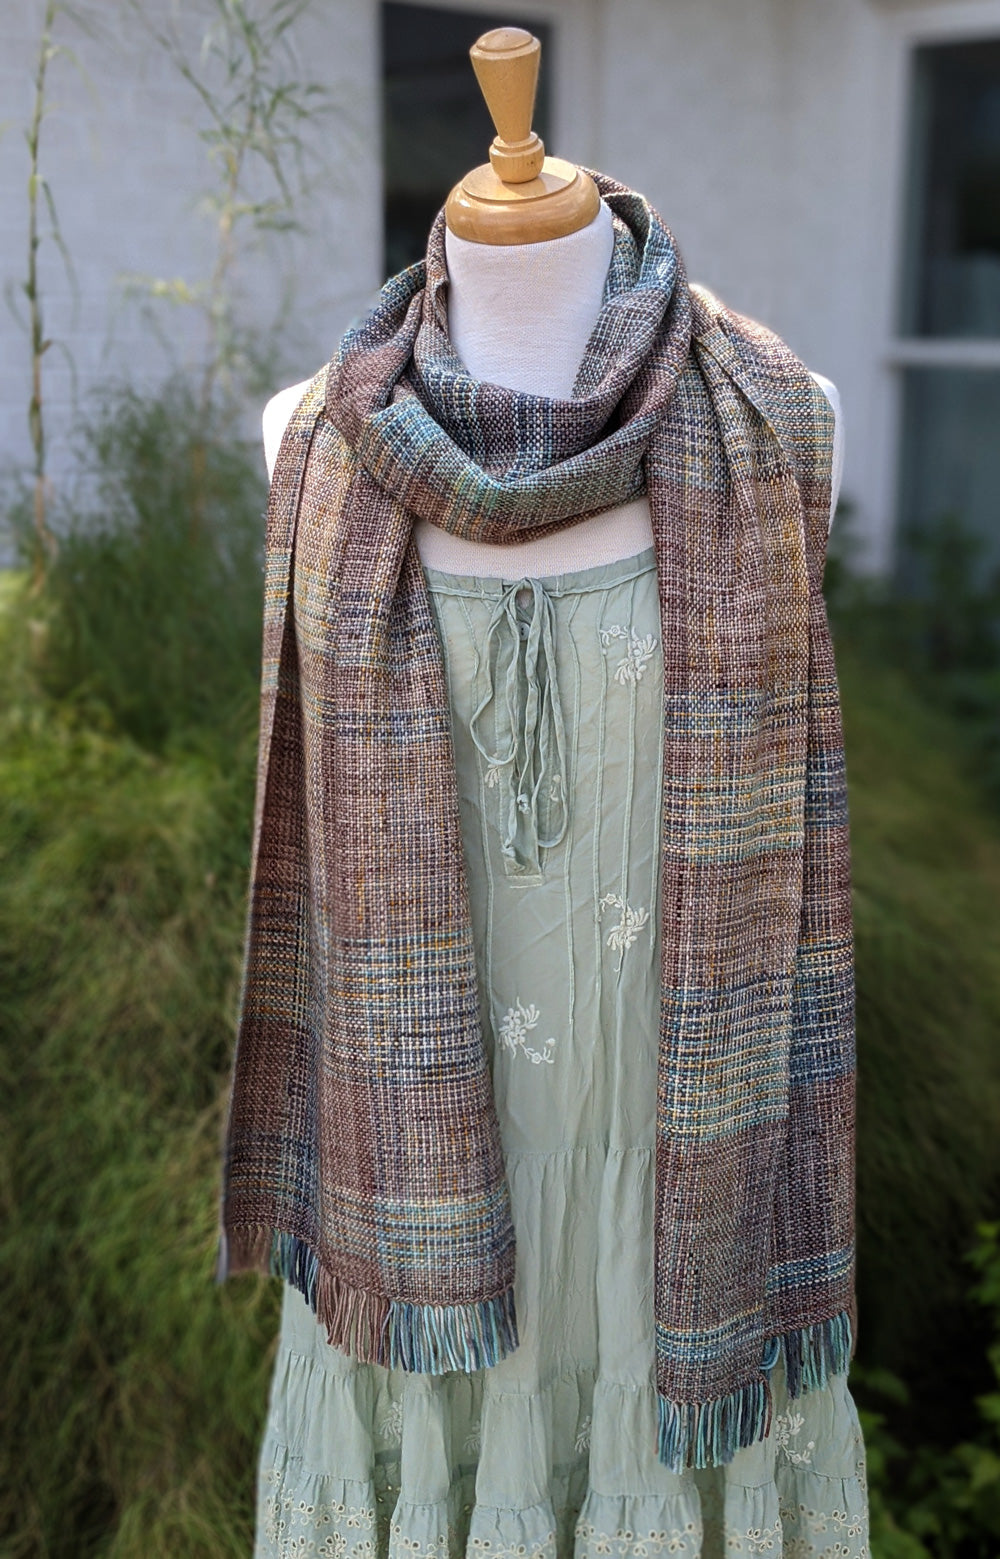 A Walk with Buddy Free Woven Scarf Pattern